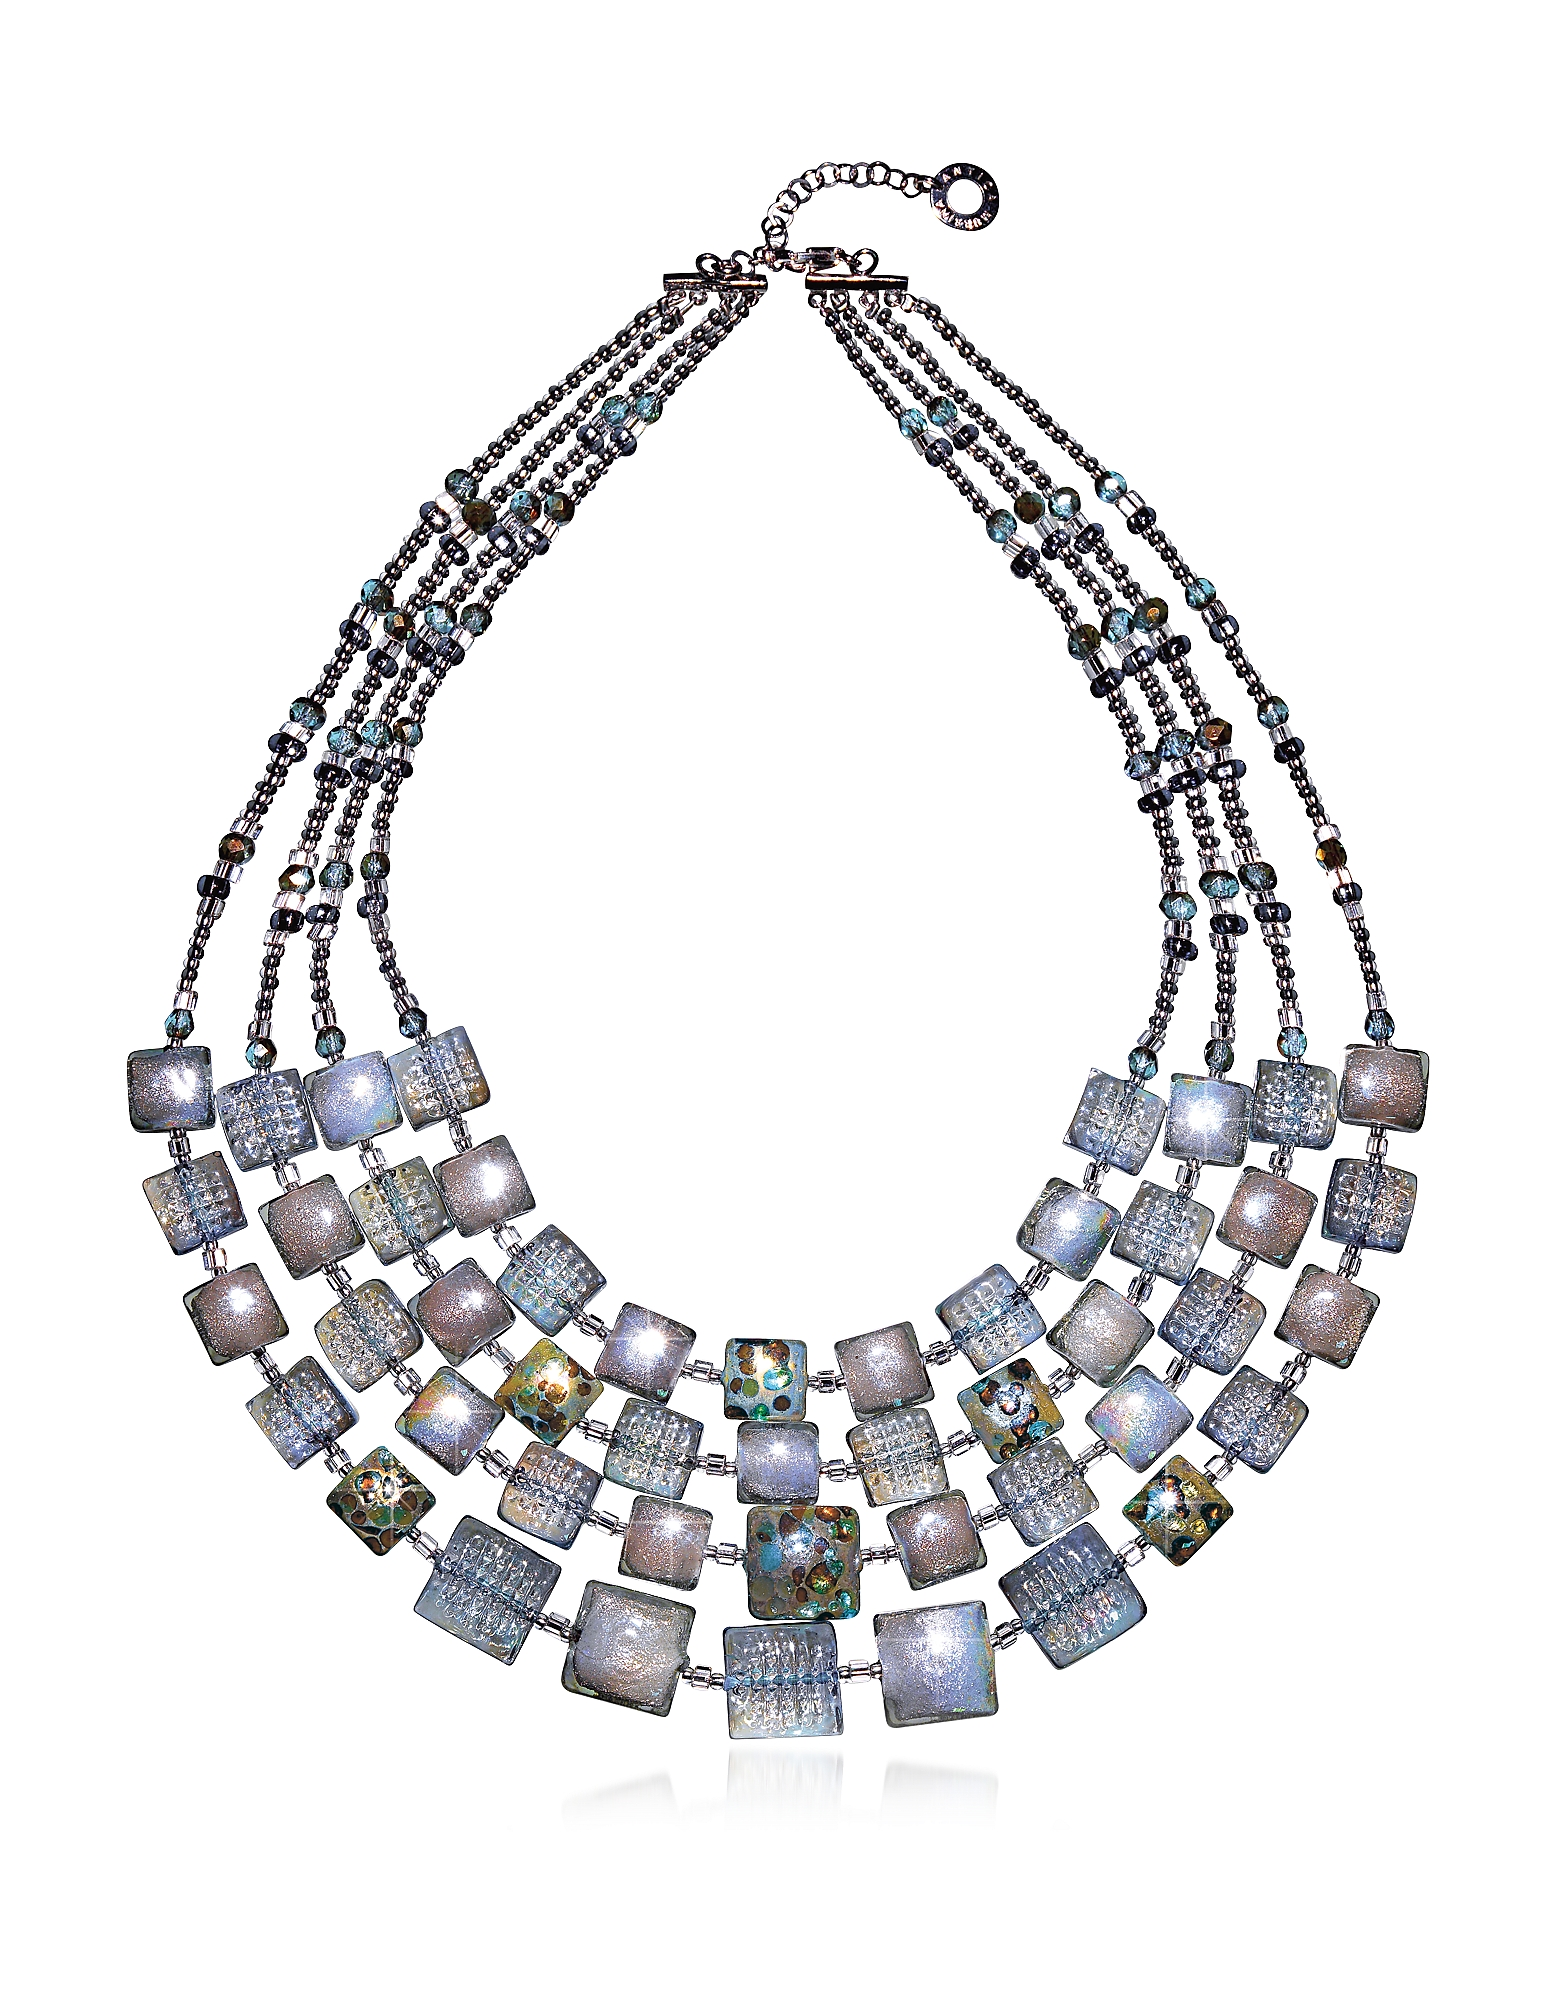 Image of Antica Murrina Designer Necklaces, Atelier Byzantium - Grey Murano Glass & Silver Leaf Choker